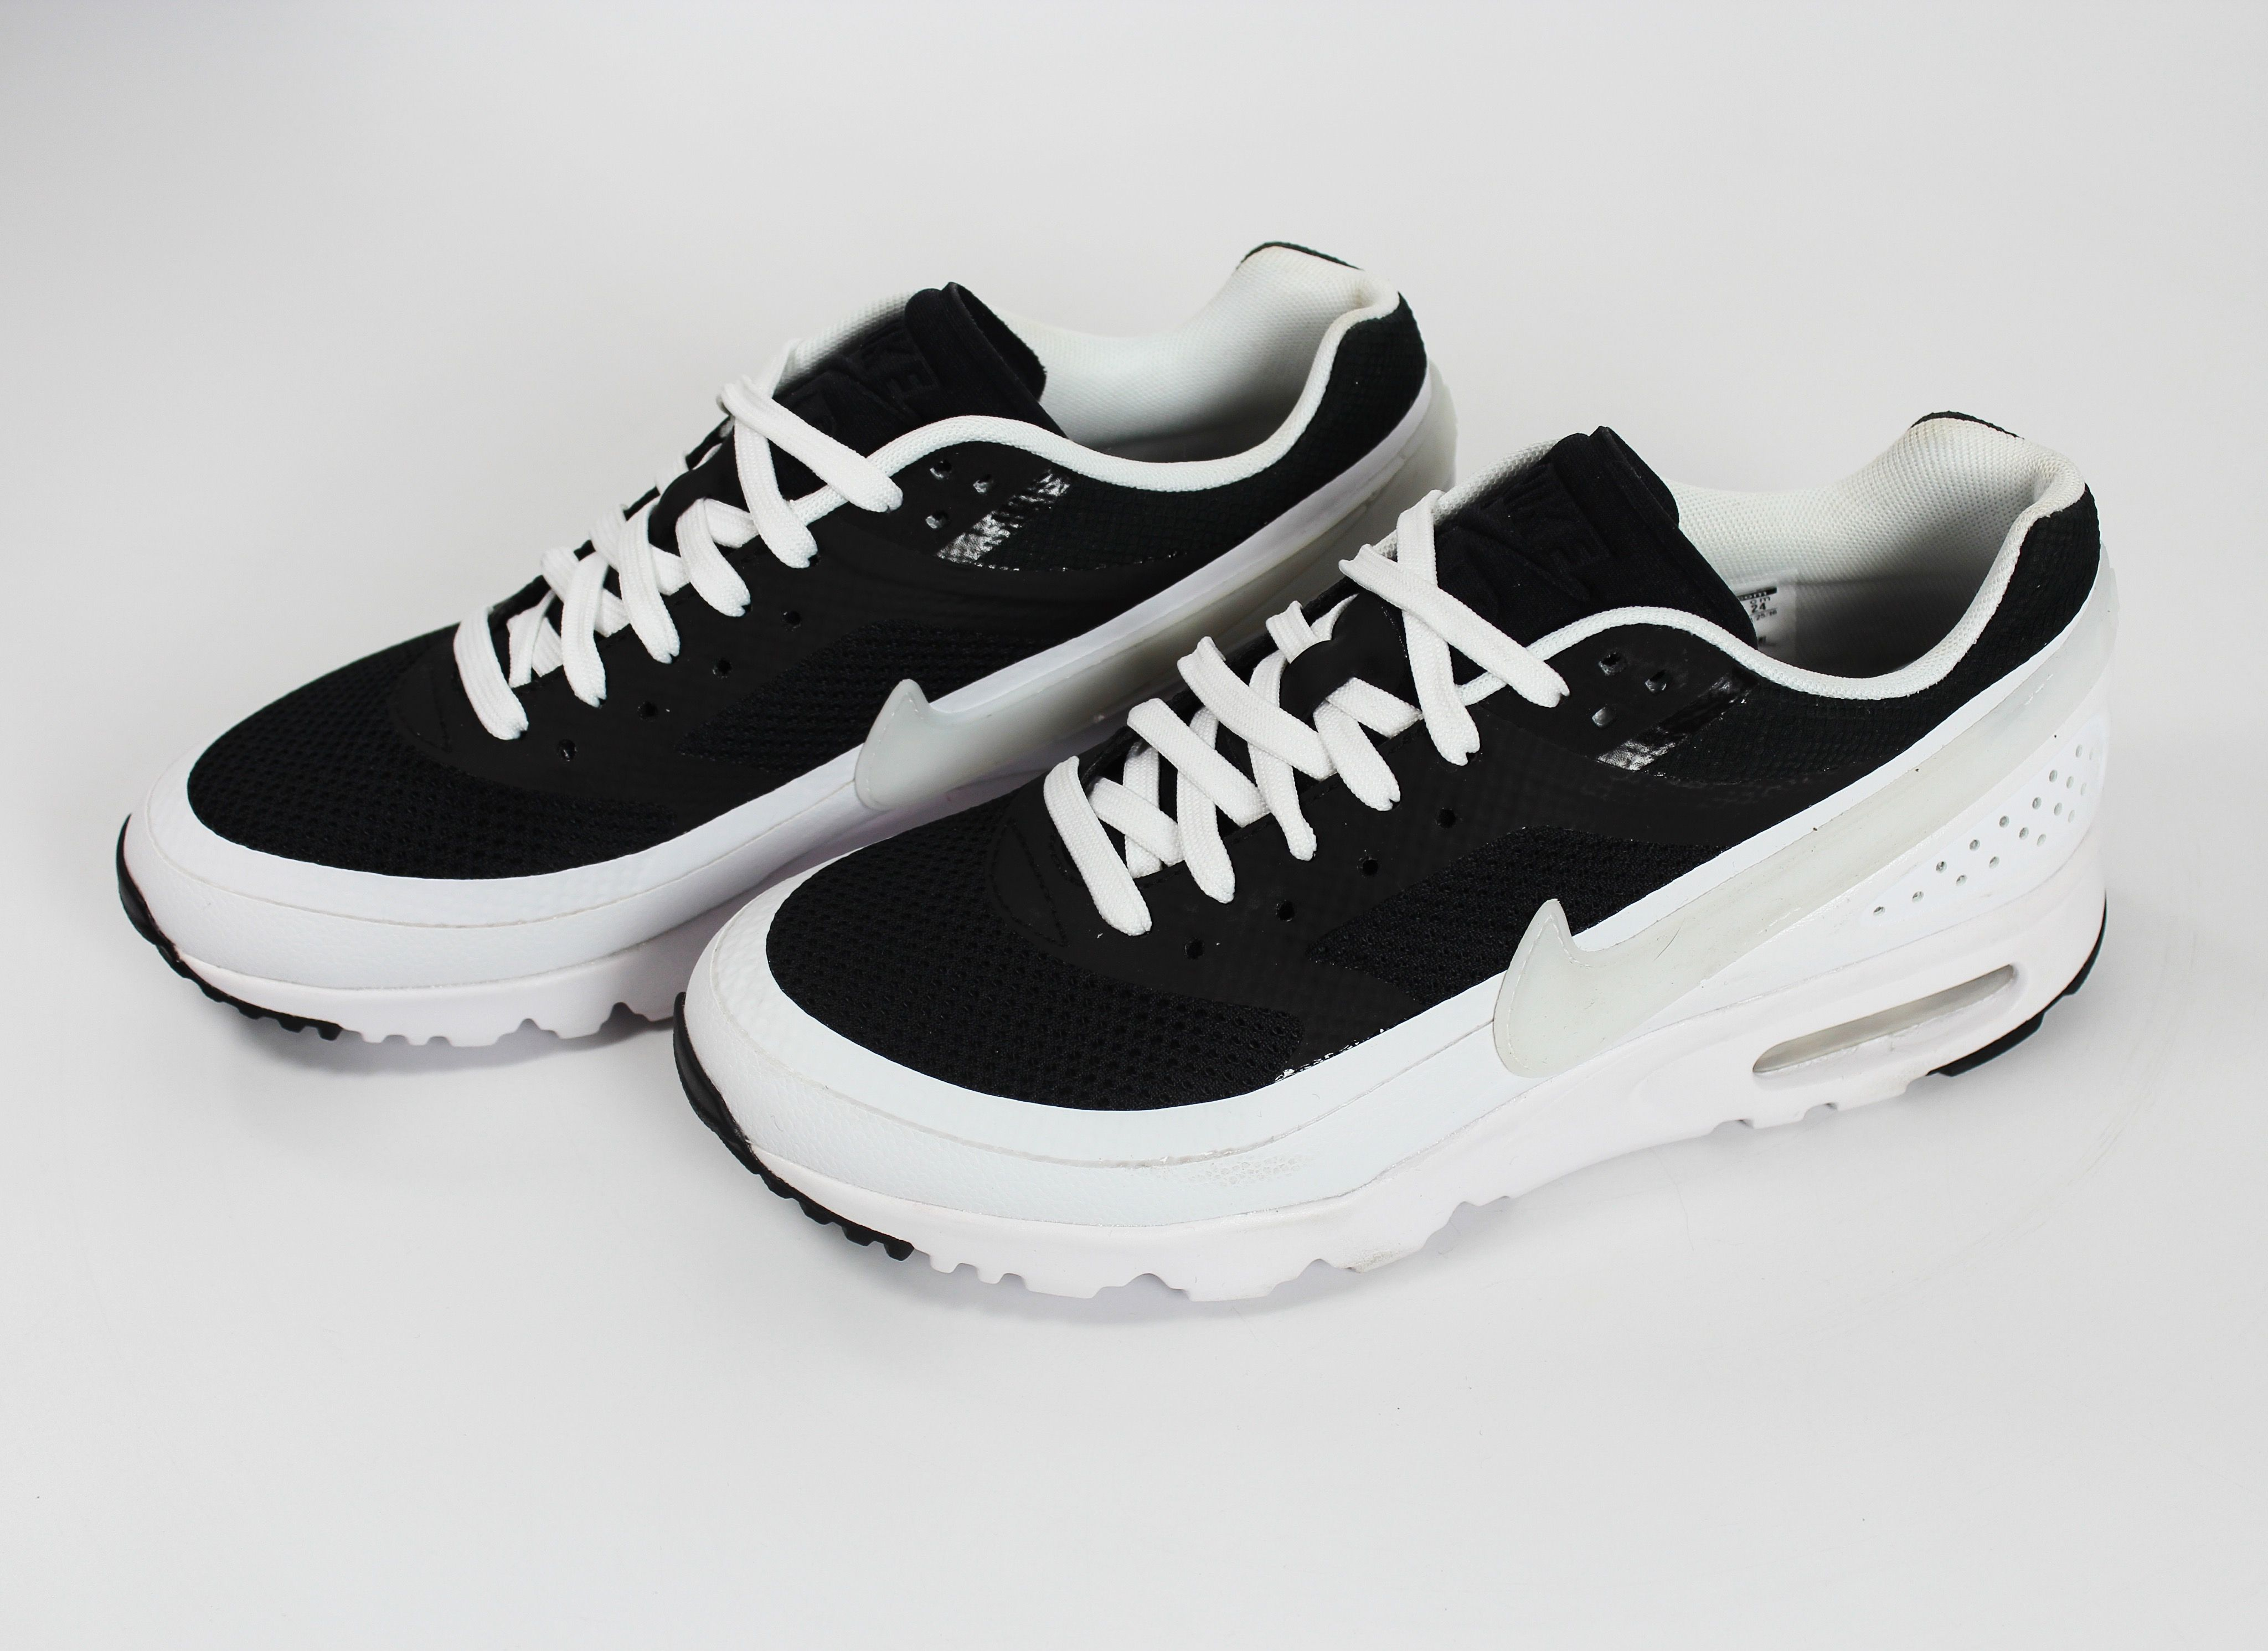 Nike Air Max Bw Ultra Réf : 819638003 | Nike air, Nike